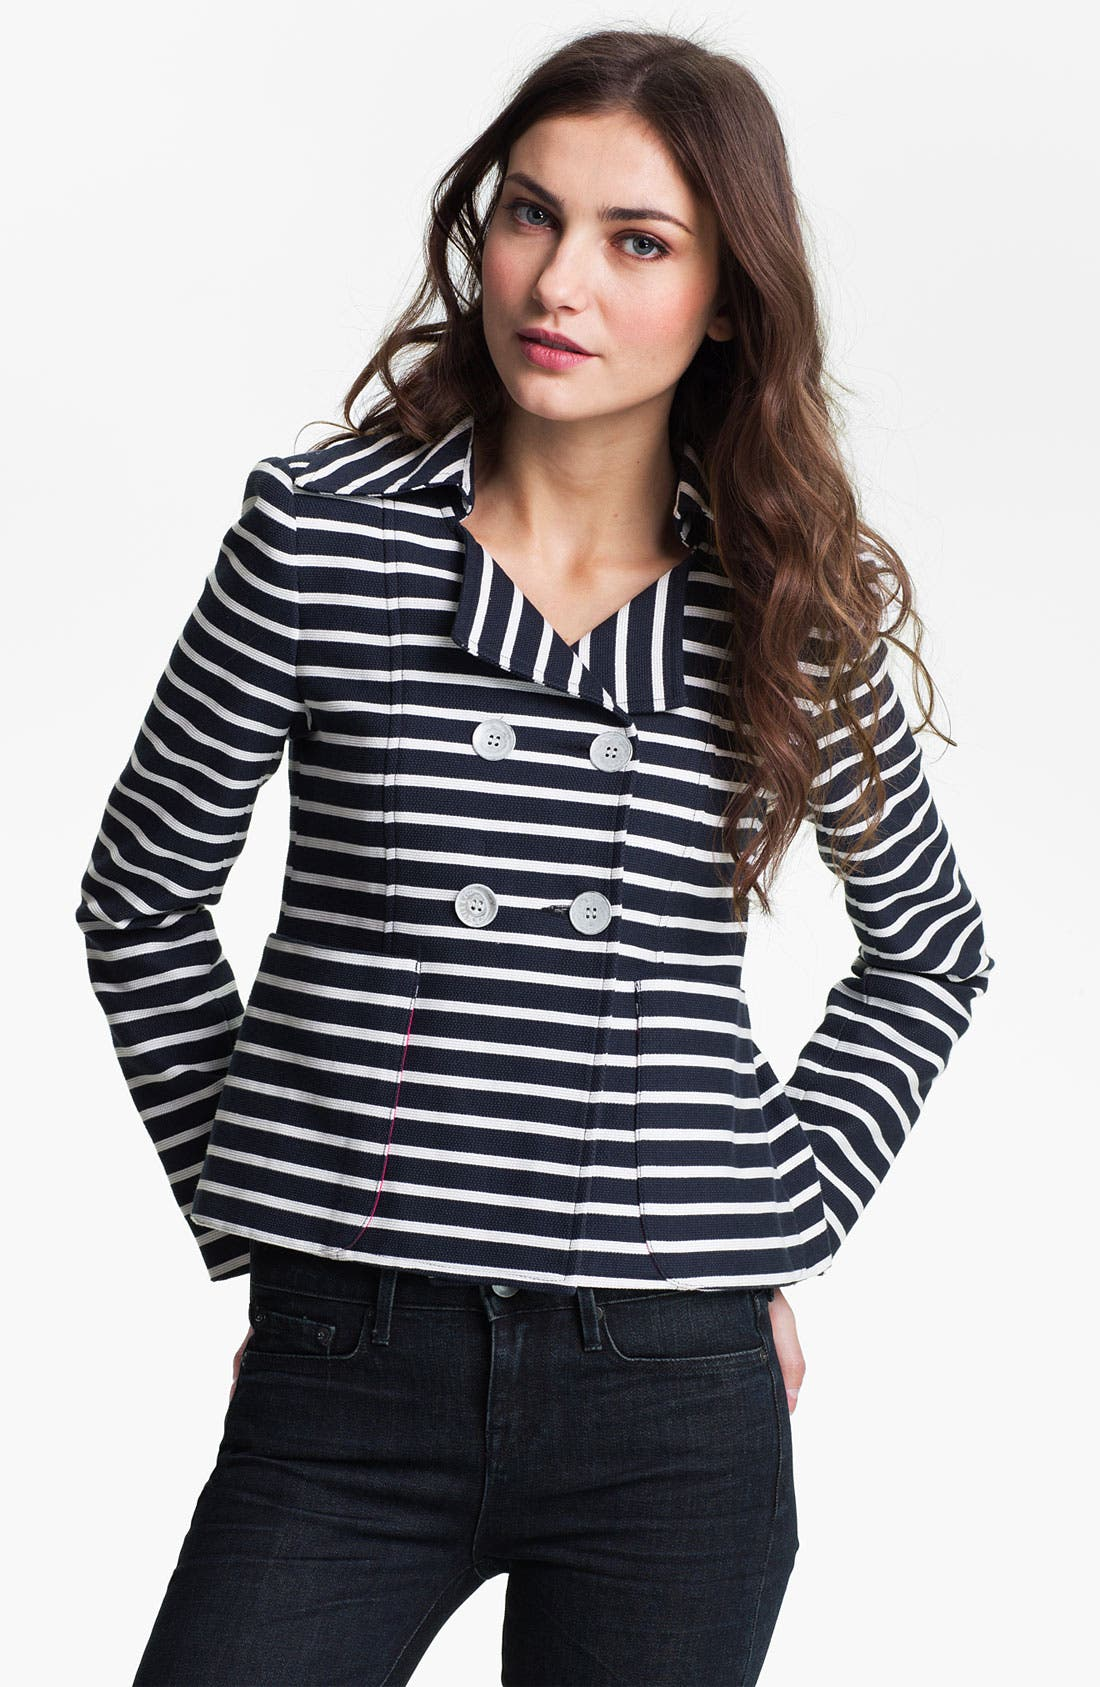 Alternate Image 1 Selected - Nanette Lepore 'Whaam' Stripe Jacket